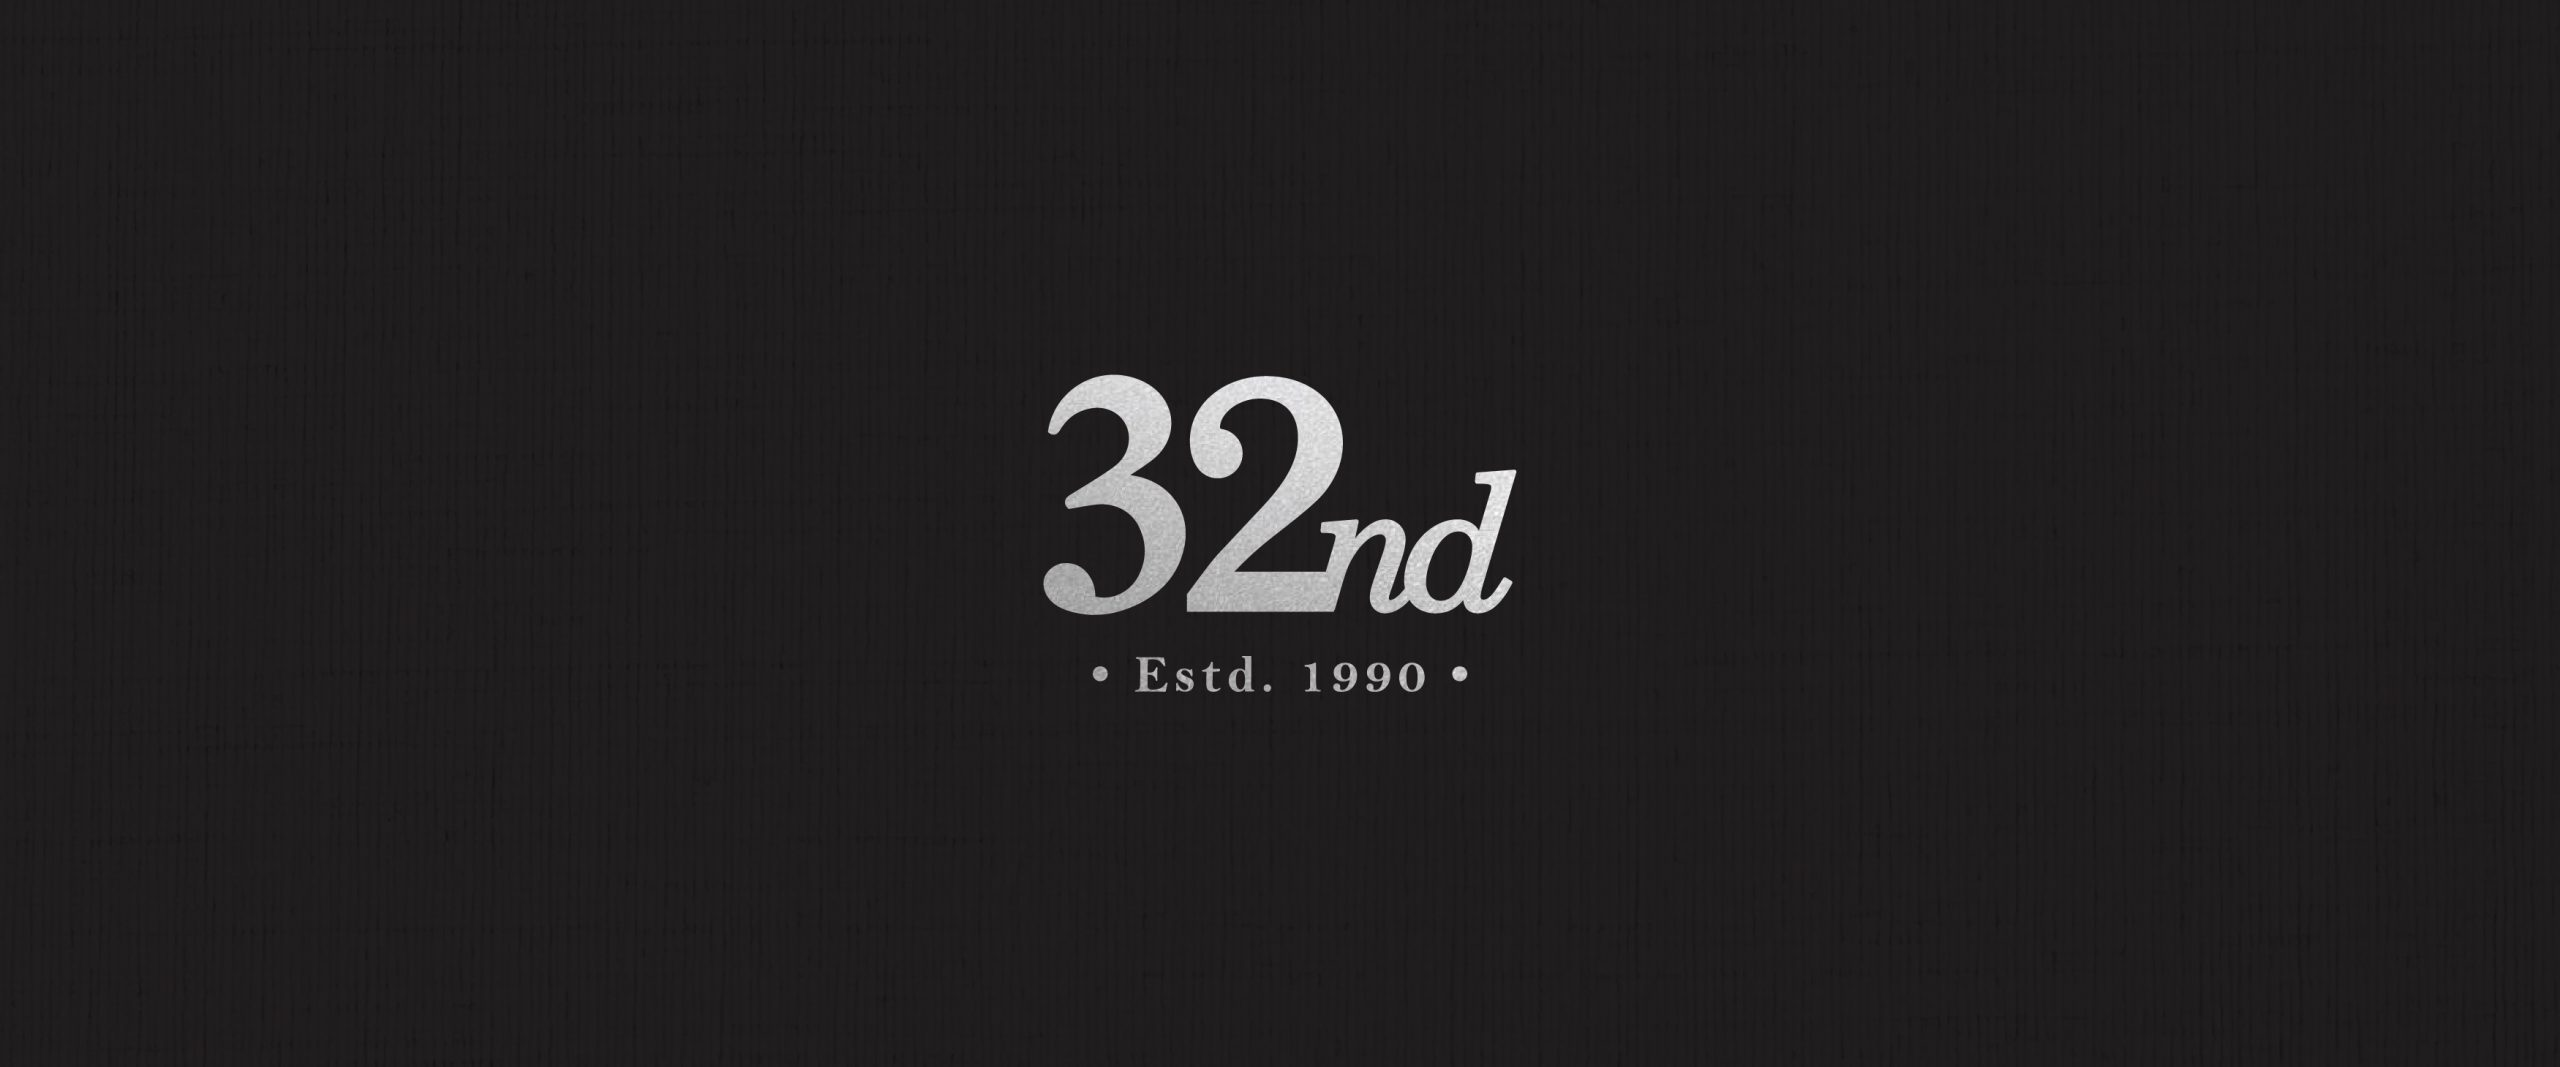 32nd-flow-01